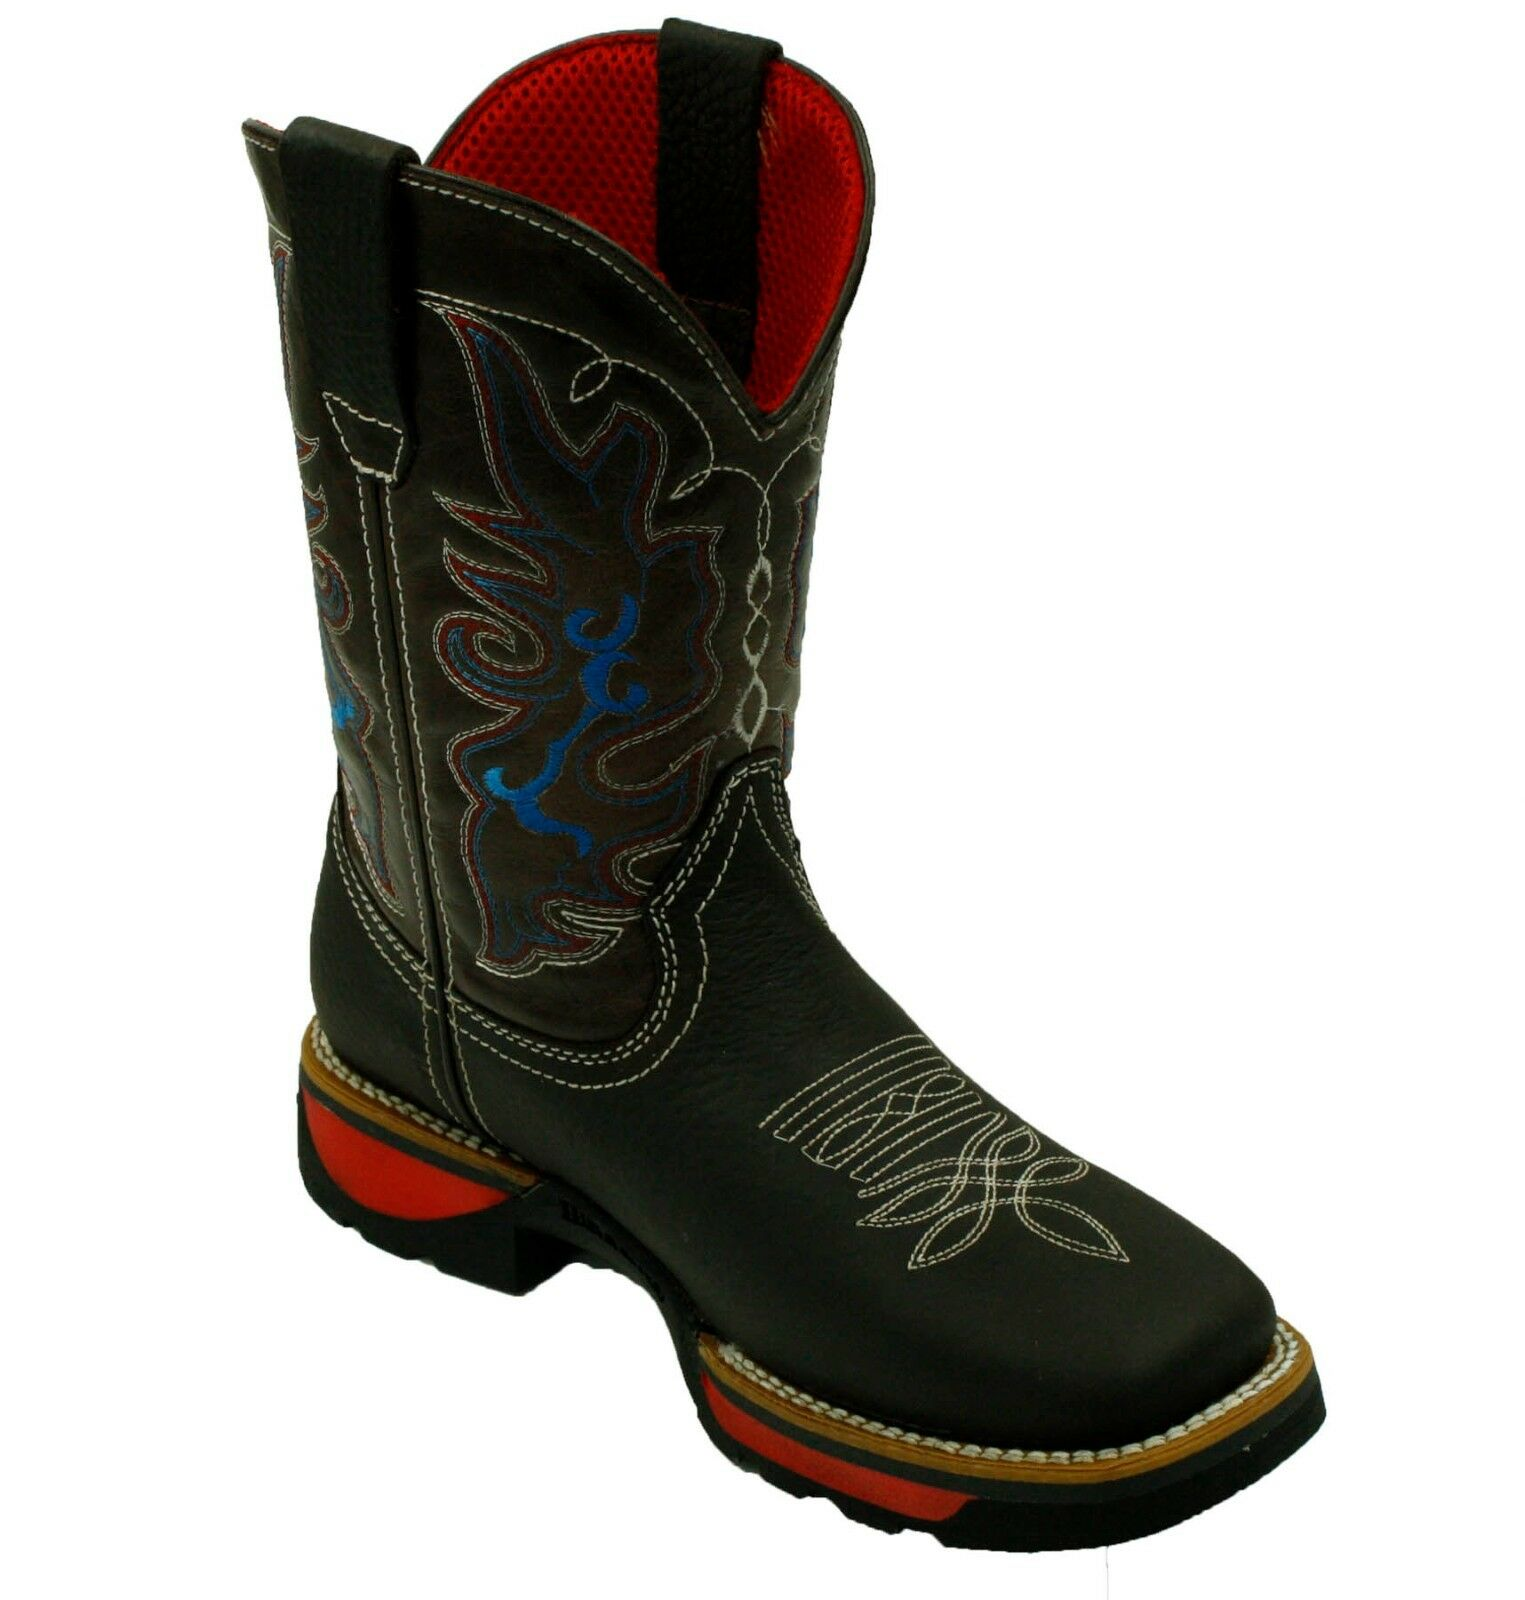 Boots - MEN'S RODEO COWBOY BOOTS GENUINE LEATHER WESTERN SQUARE TOE BOOTS LIGHT WEIGHT